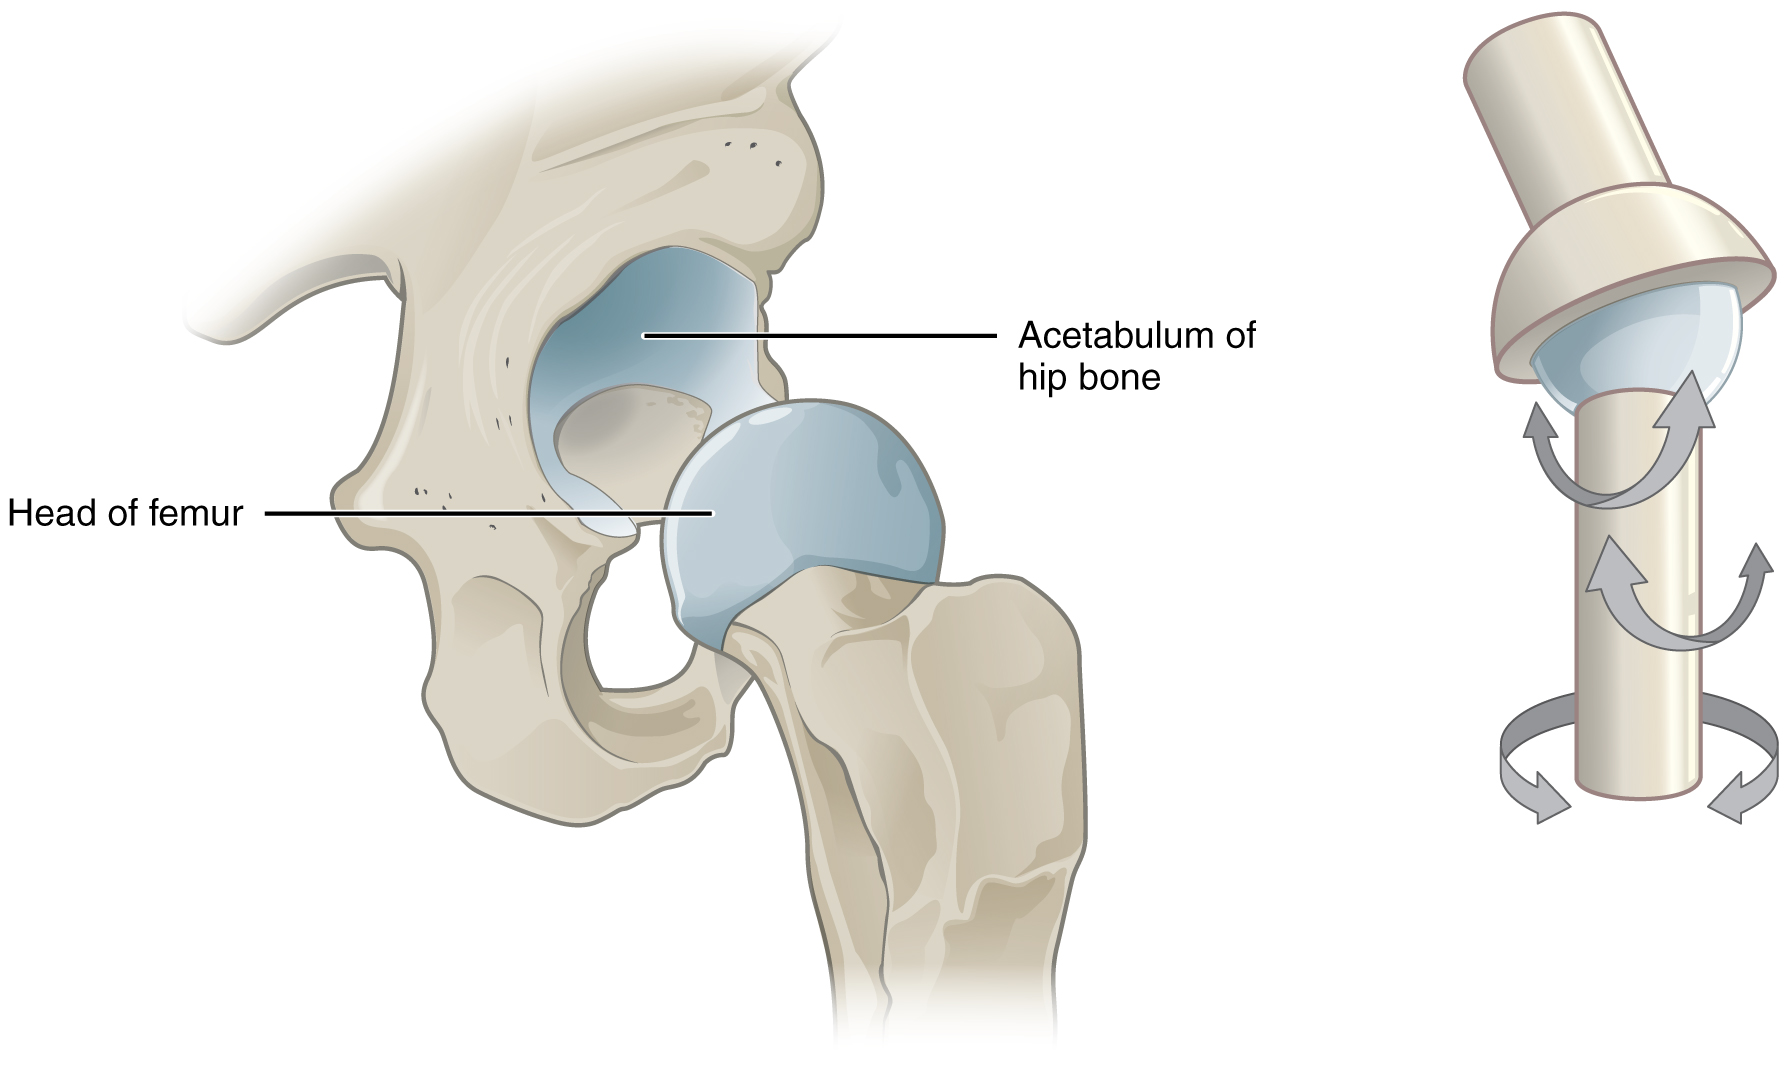 This image shows a multiaxial joint. The left panel shows the acetabulum of the hip bone and the head of the femur. The right panel shows a simplified ball-and-socket joint structure to illustrate the movement of the hip joint.